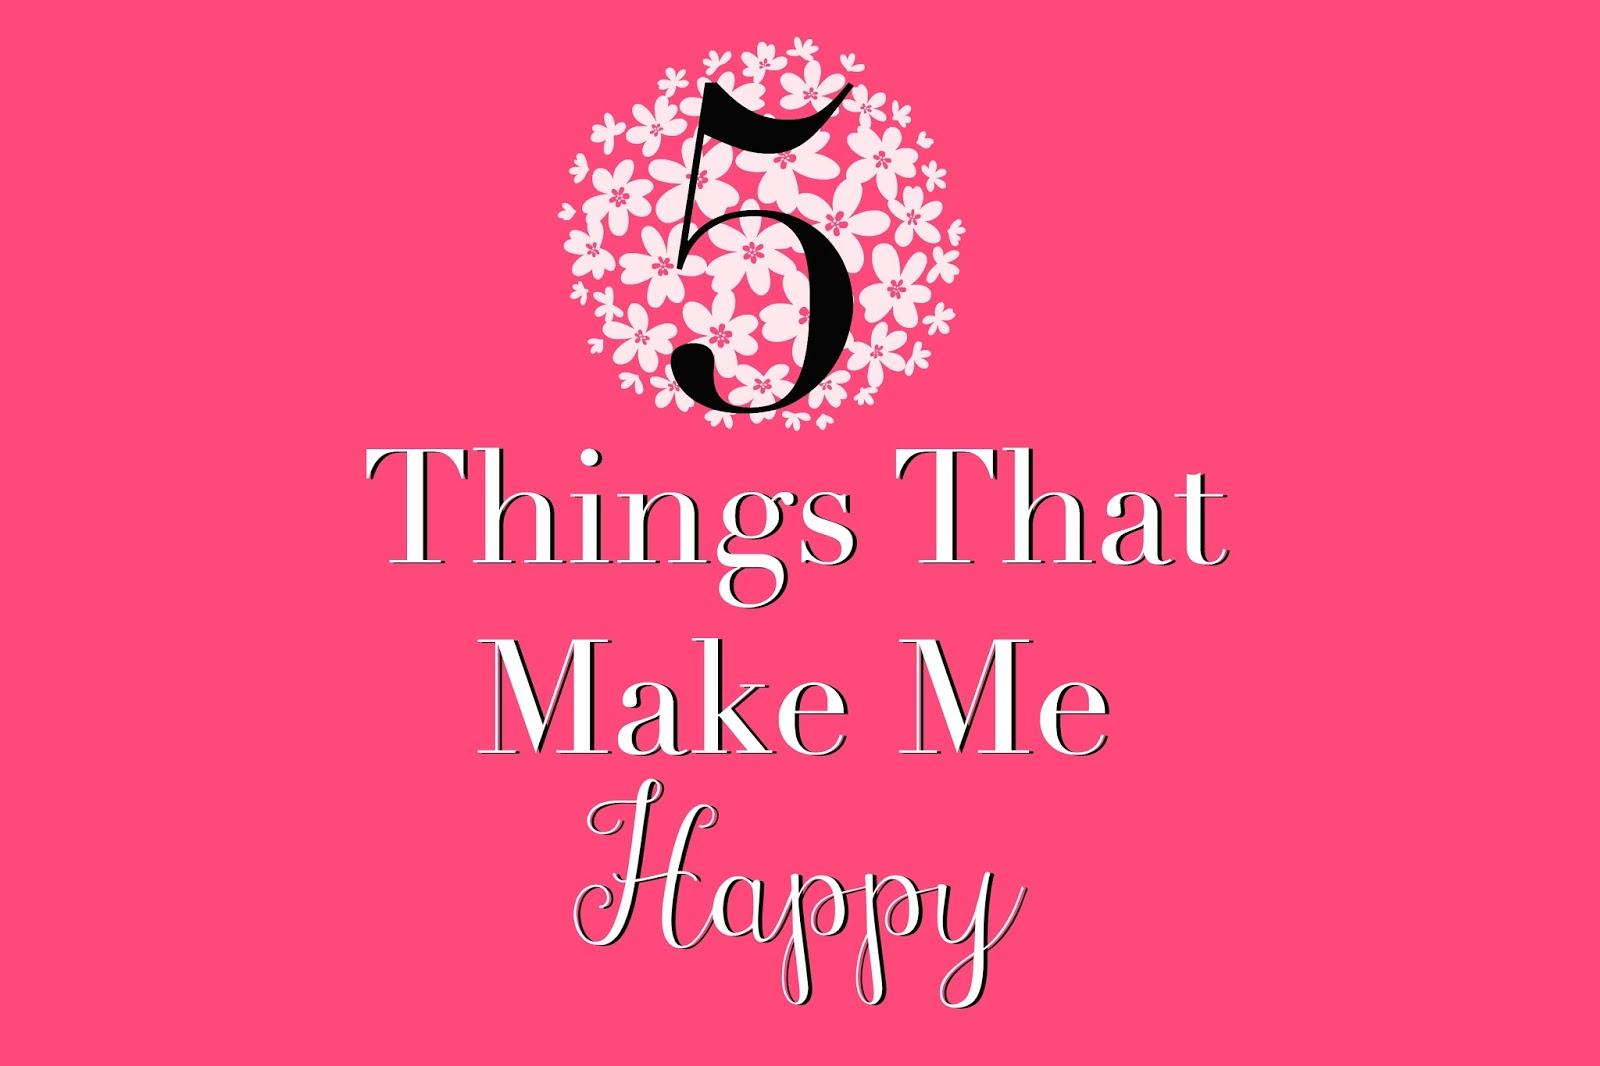 3 things that make me happy essay For me there are many things that can make people happy in the world making someone happy is a matter of being sensitive to one's needs many pursue the c.